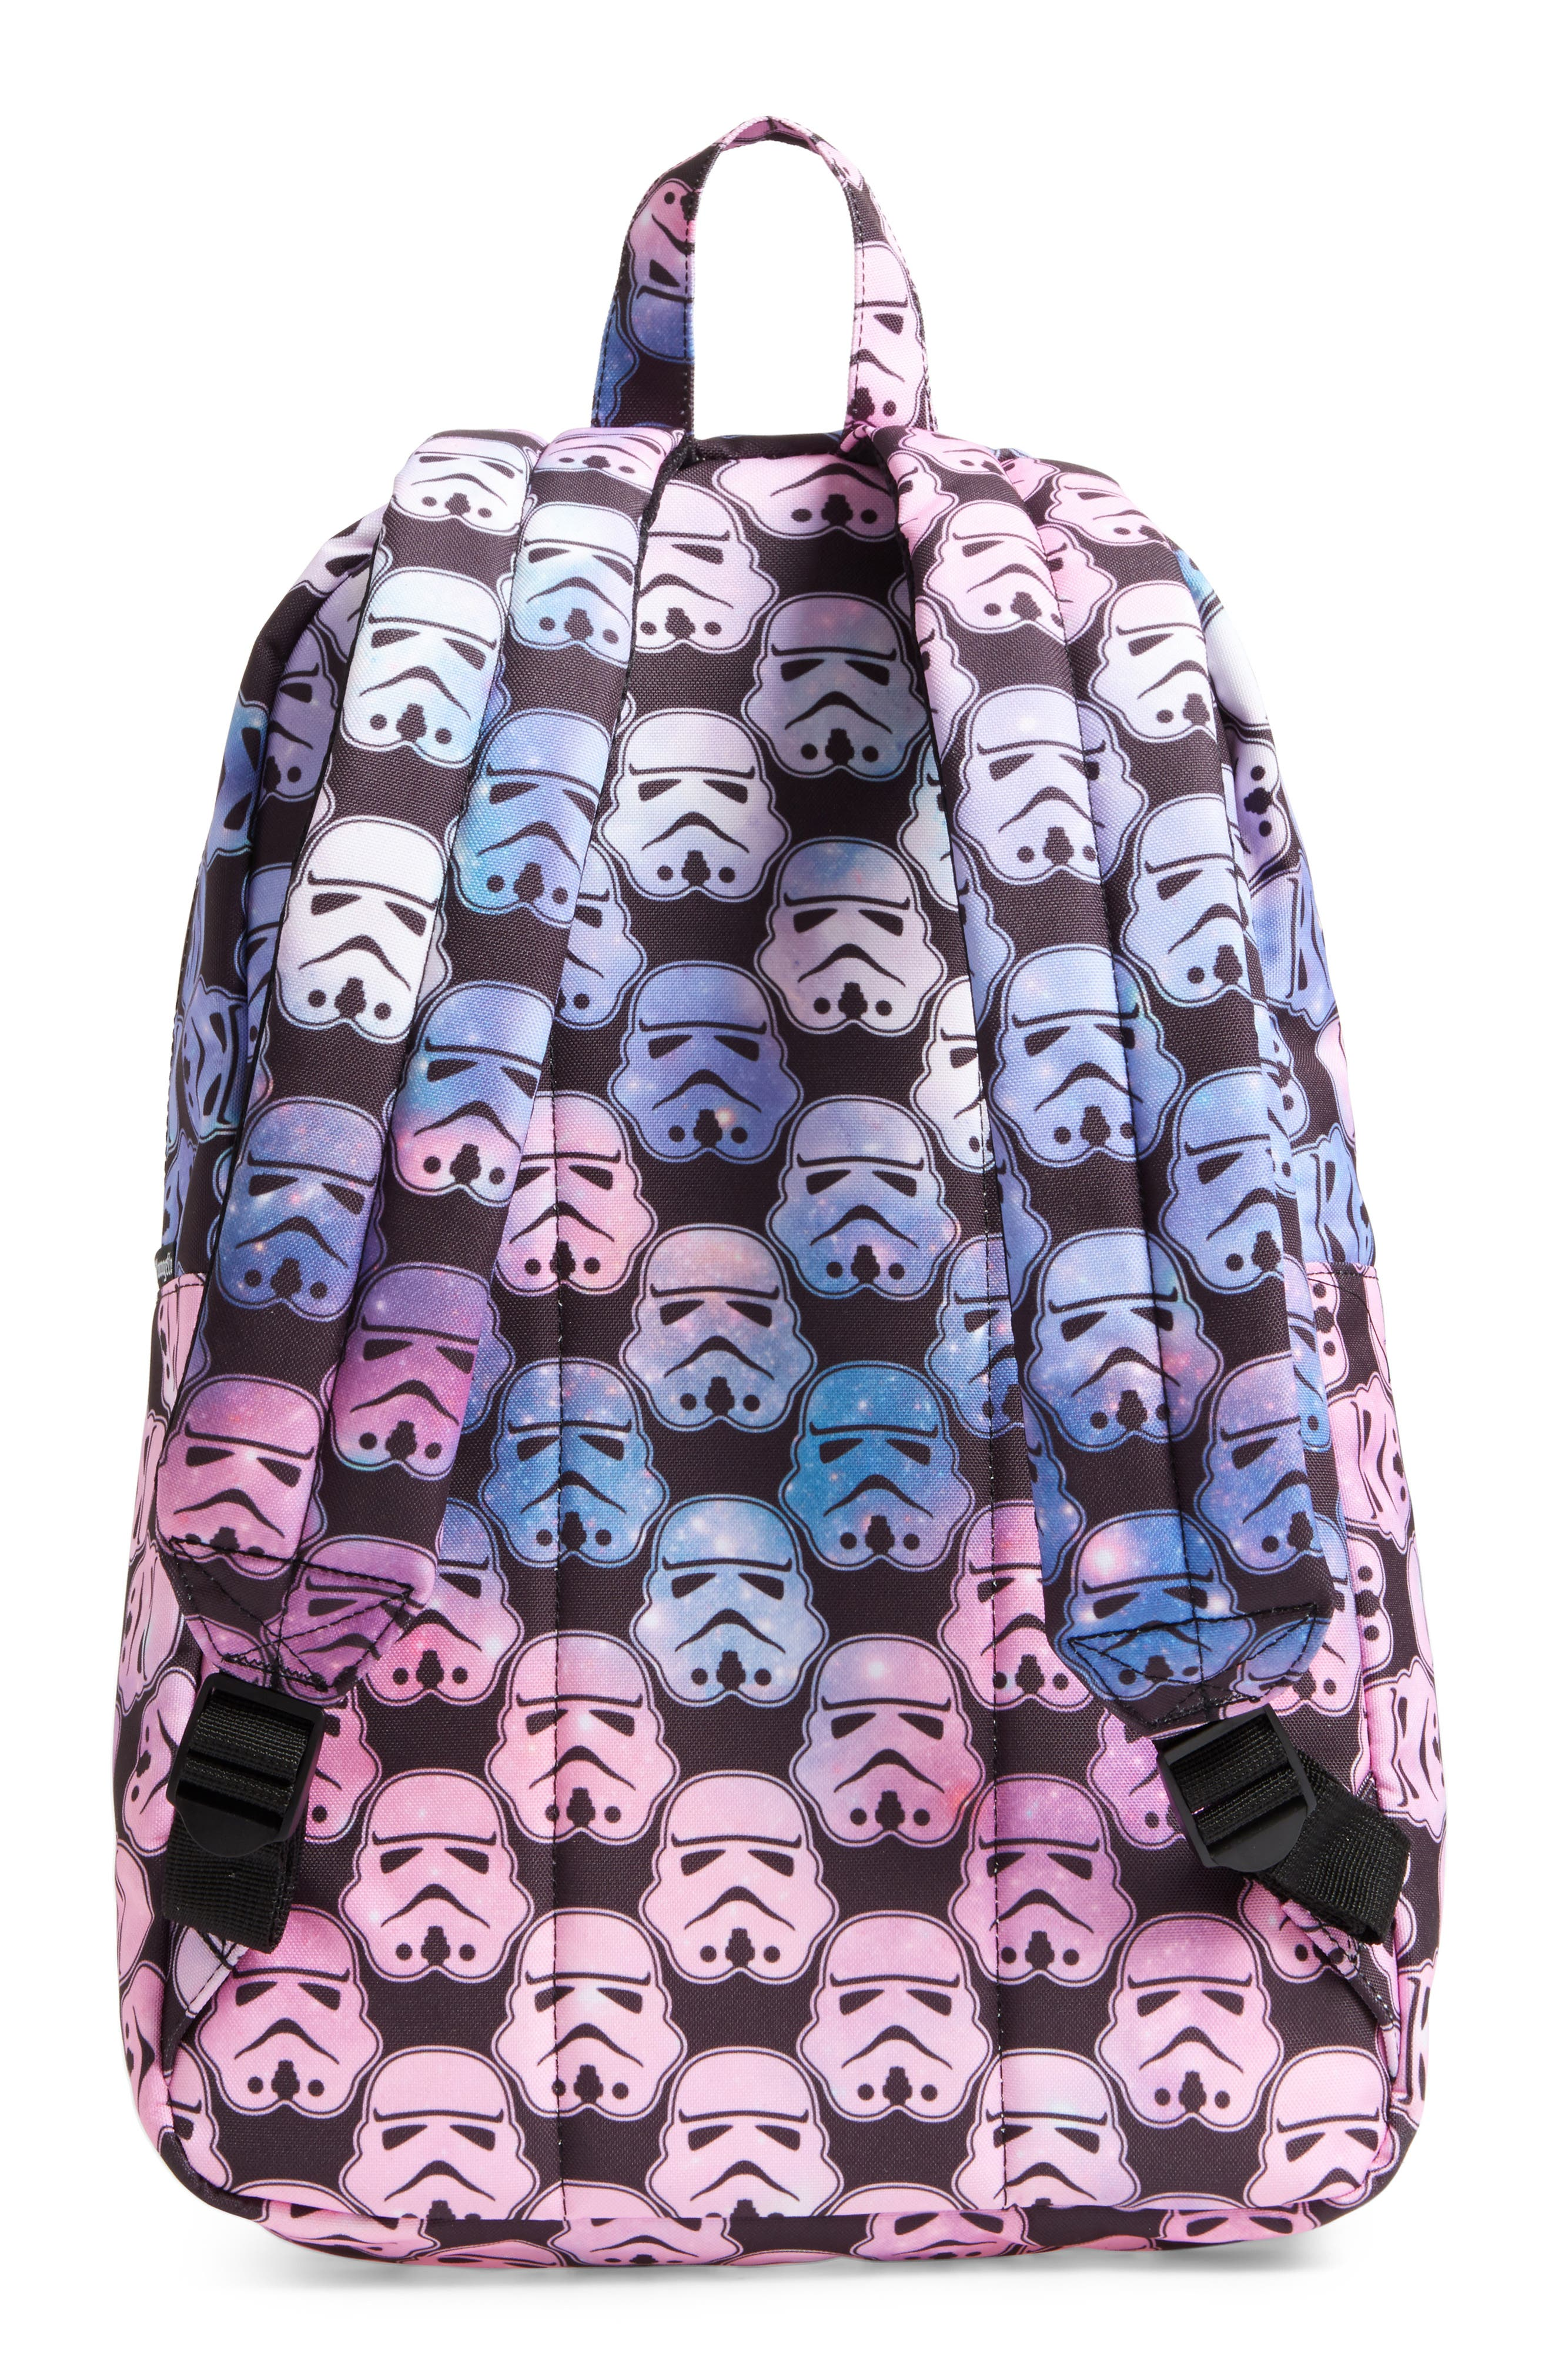 Star Wars<sup>™</sup> Stormtrooper Galaxy Backpack,                             Alternate thumbnail 2, color,                             Multi Black